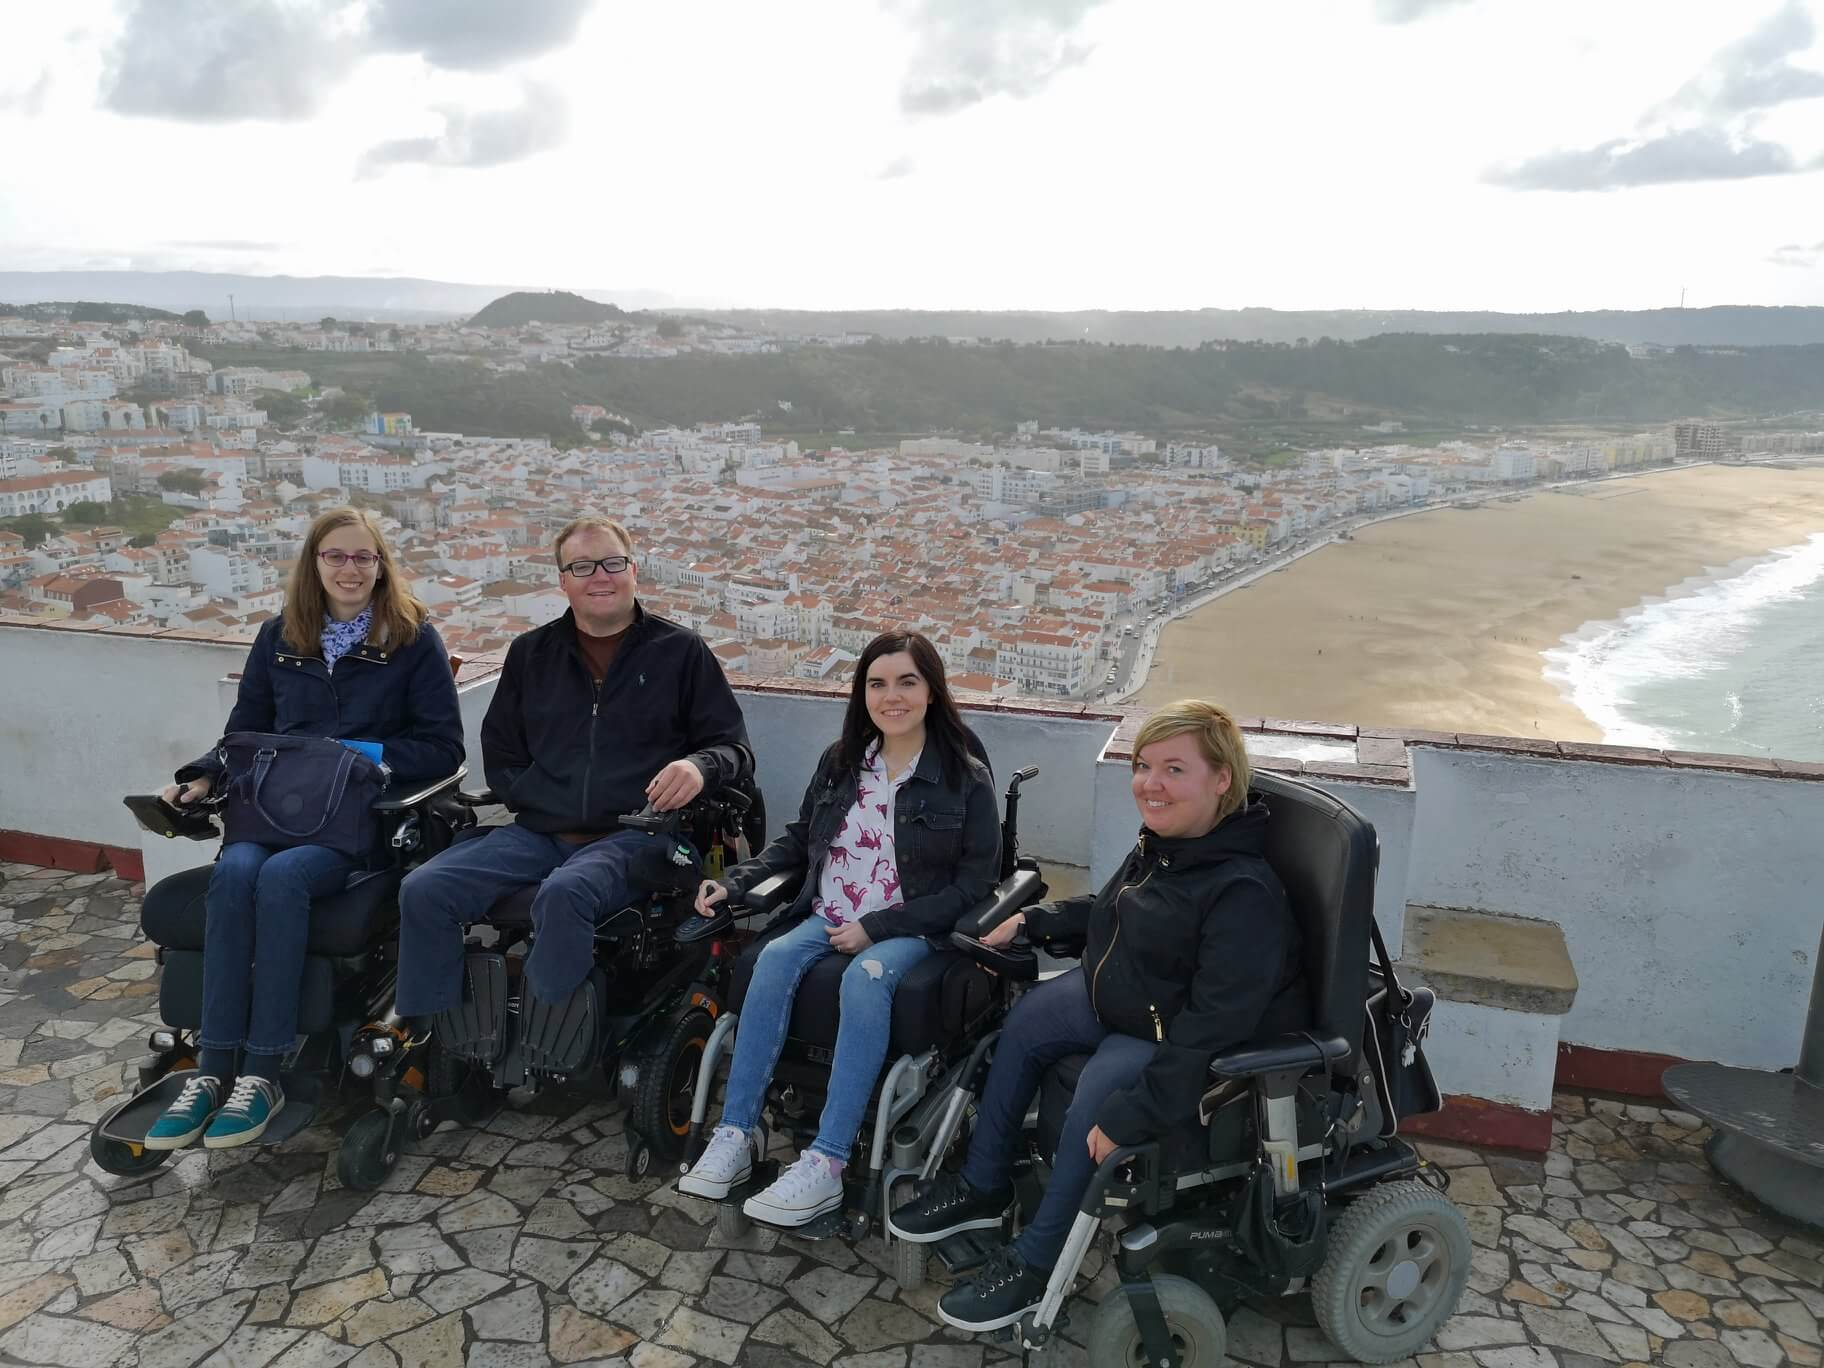 Emma with John Morris, Sanna and Blandine, a group of accessible travel bloggers. They are sitting in their wheelchairs with the Nazaré beach behind them.